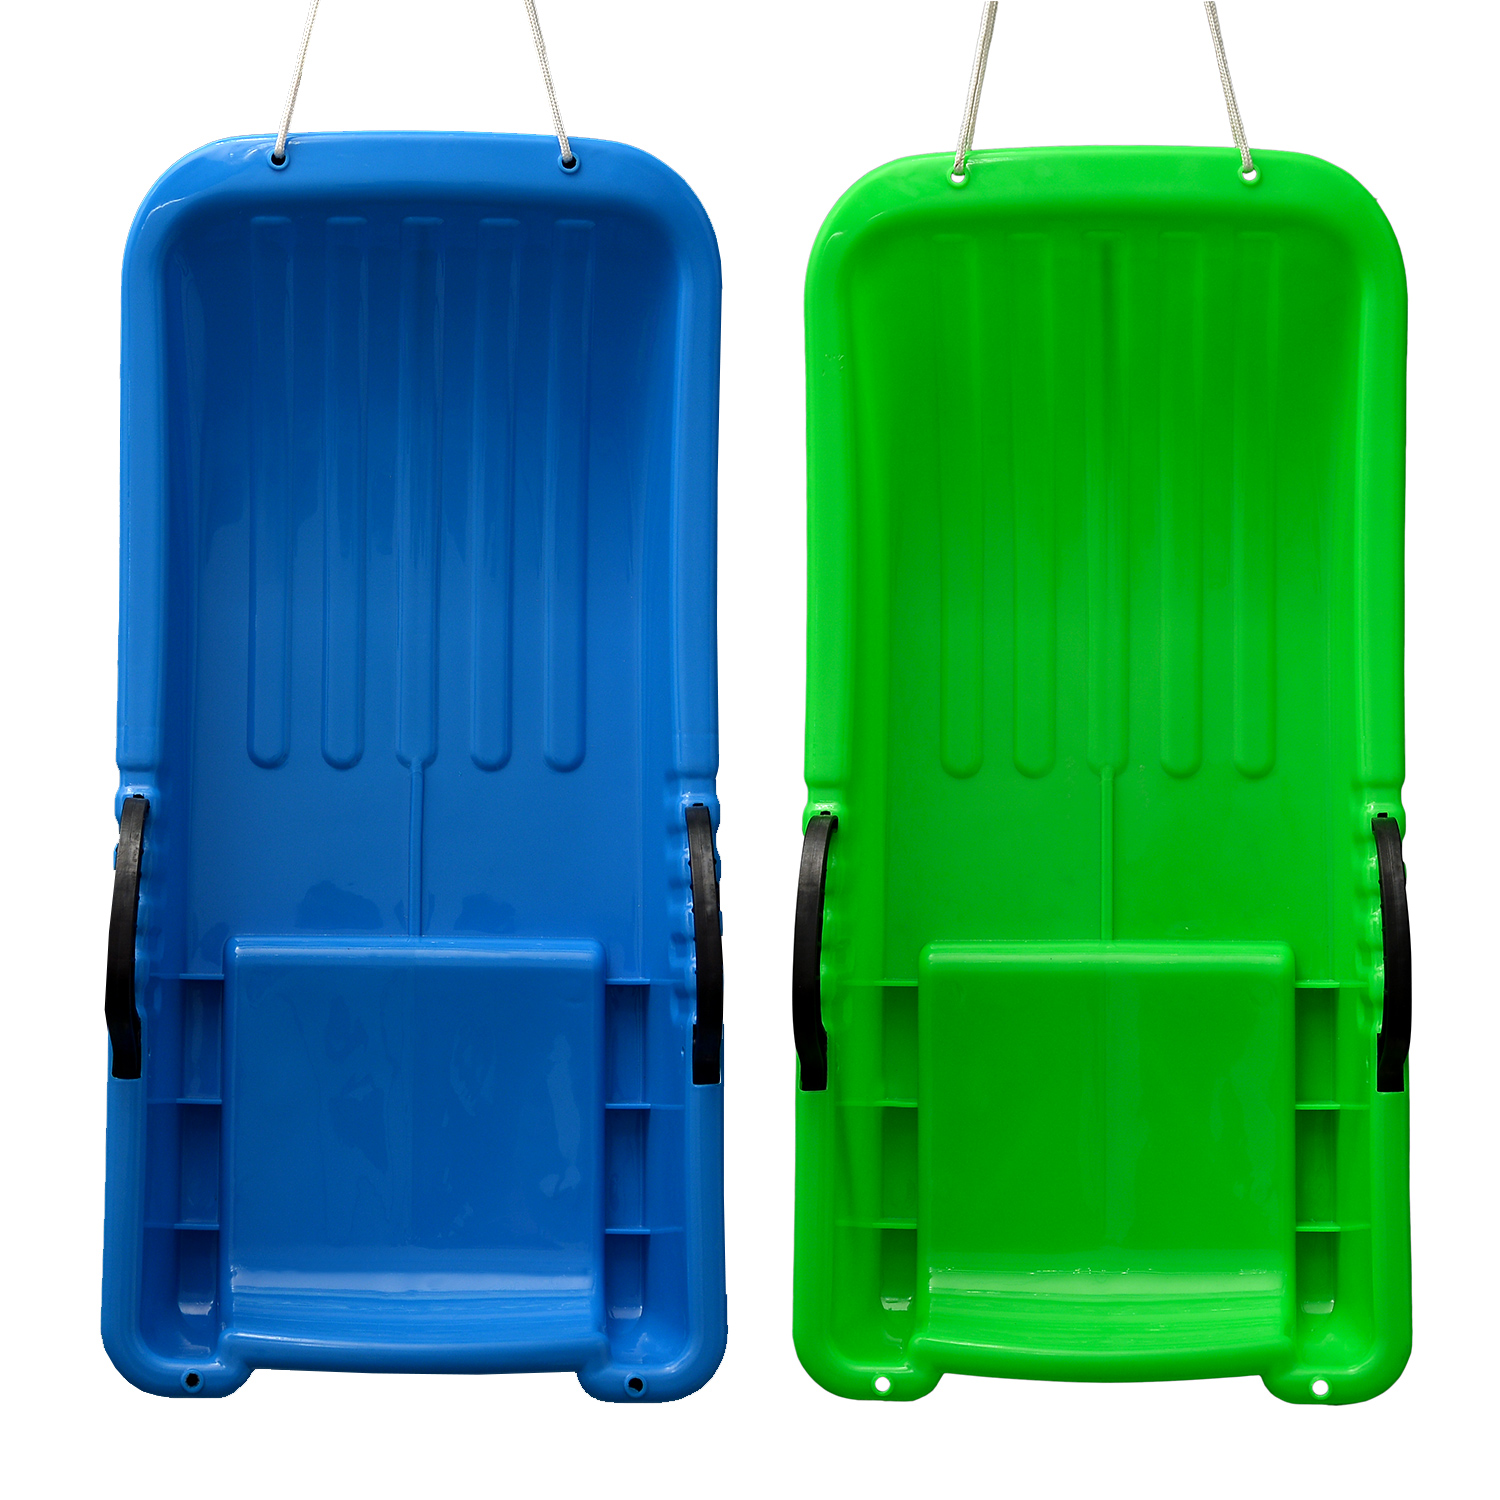 IMagE 31.5x15.7x5.3inches Kids Snow Sled Plastic Toboggan Boat Sledge Snowboard by